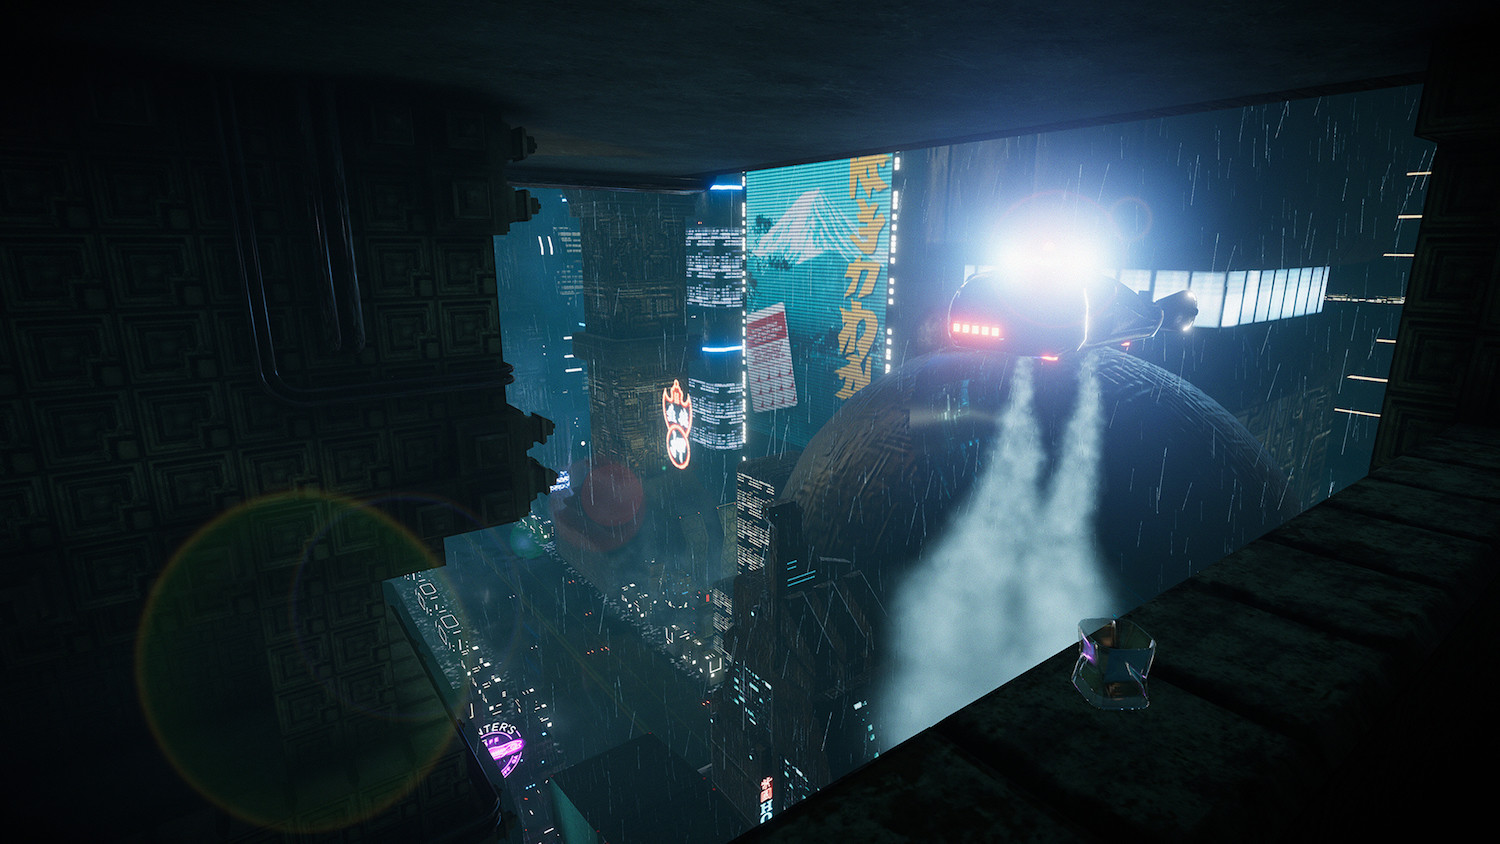 Blade Runner 9732 VR Experience Now Available